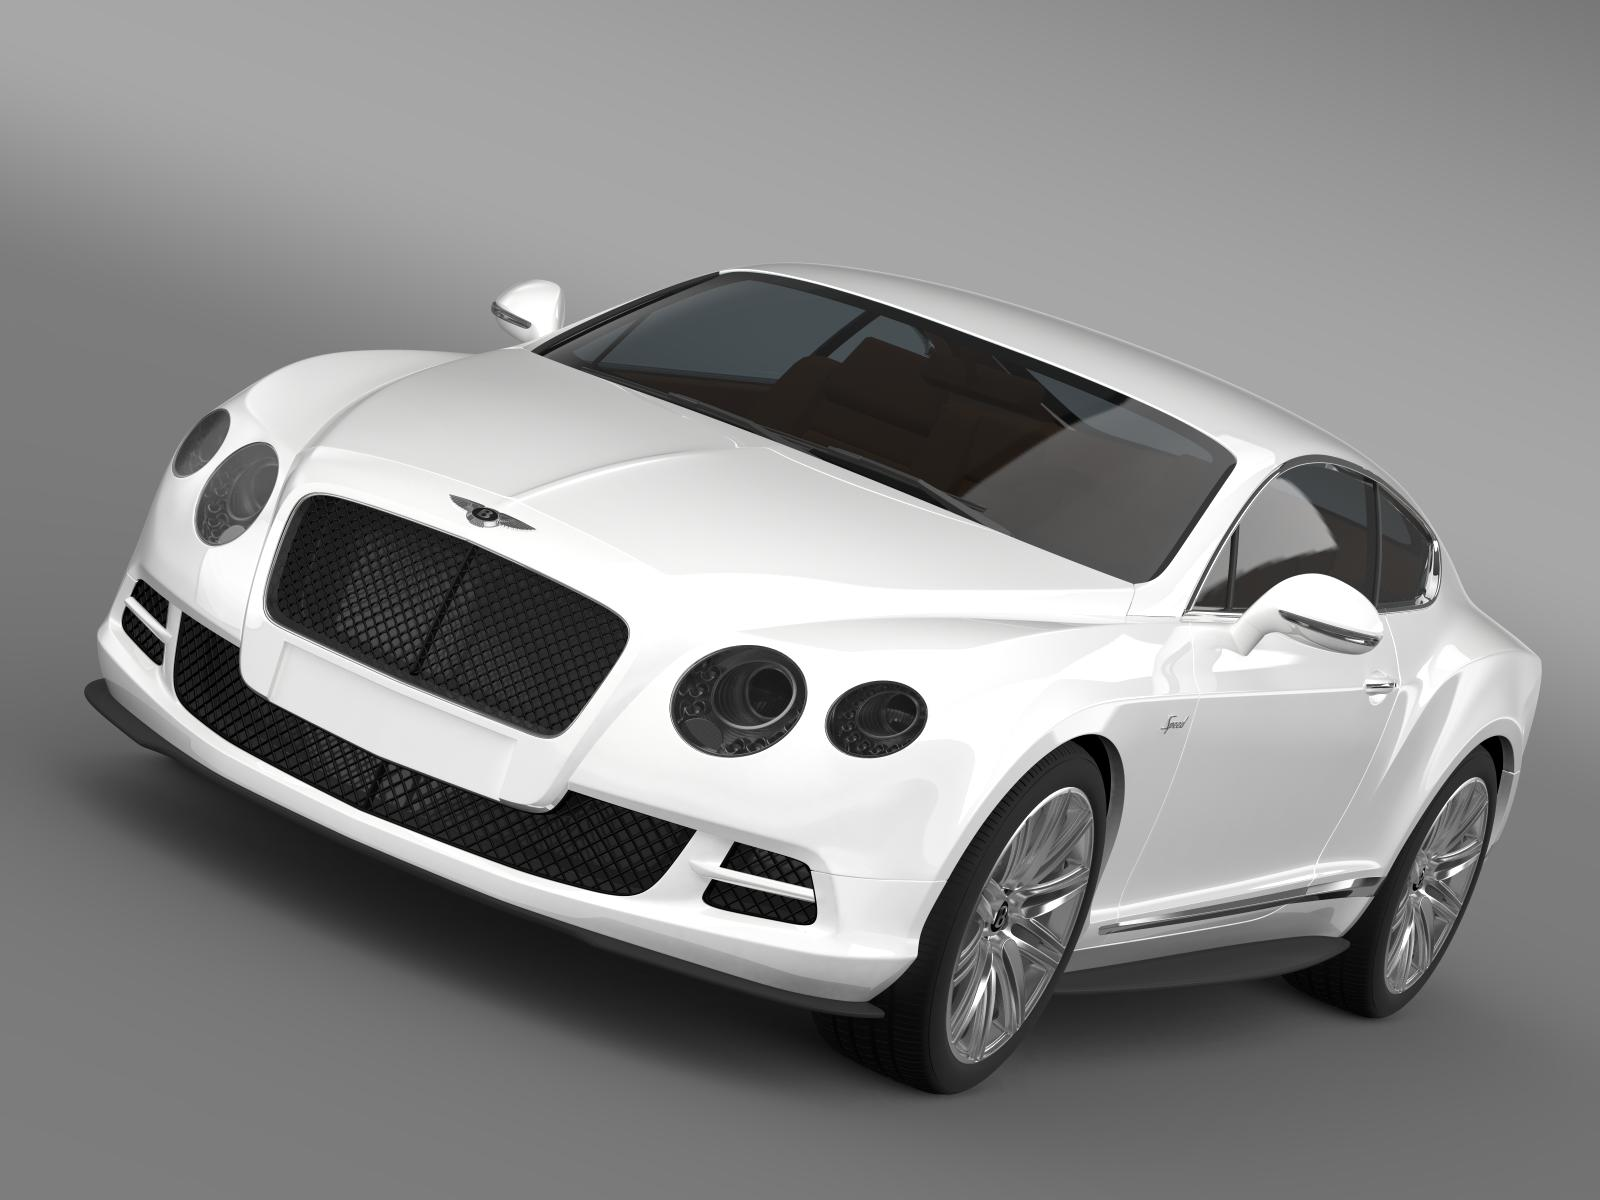 bentley continental gt speed 2014 3d model 3ds max fbx c4d lwo ma mb hrc xsi obj 163499